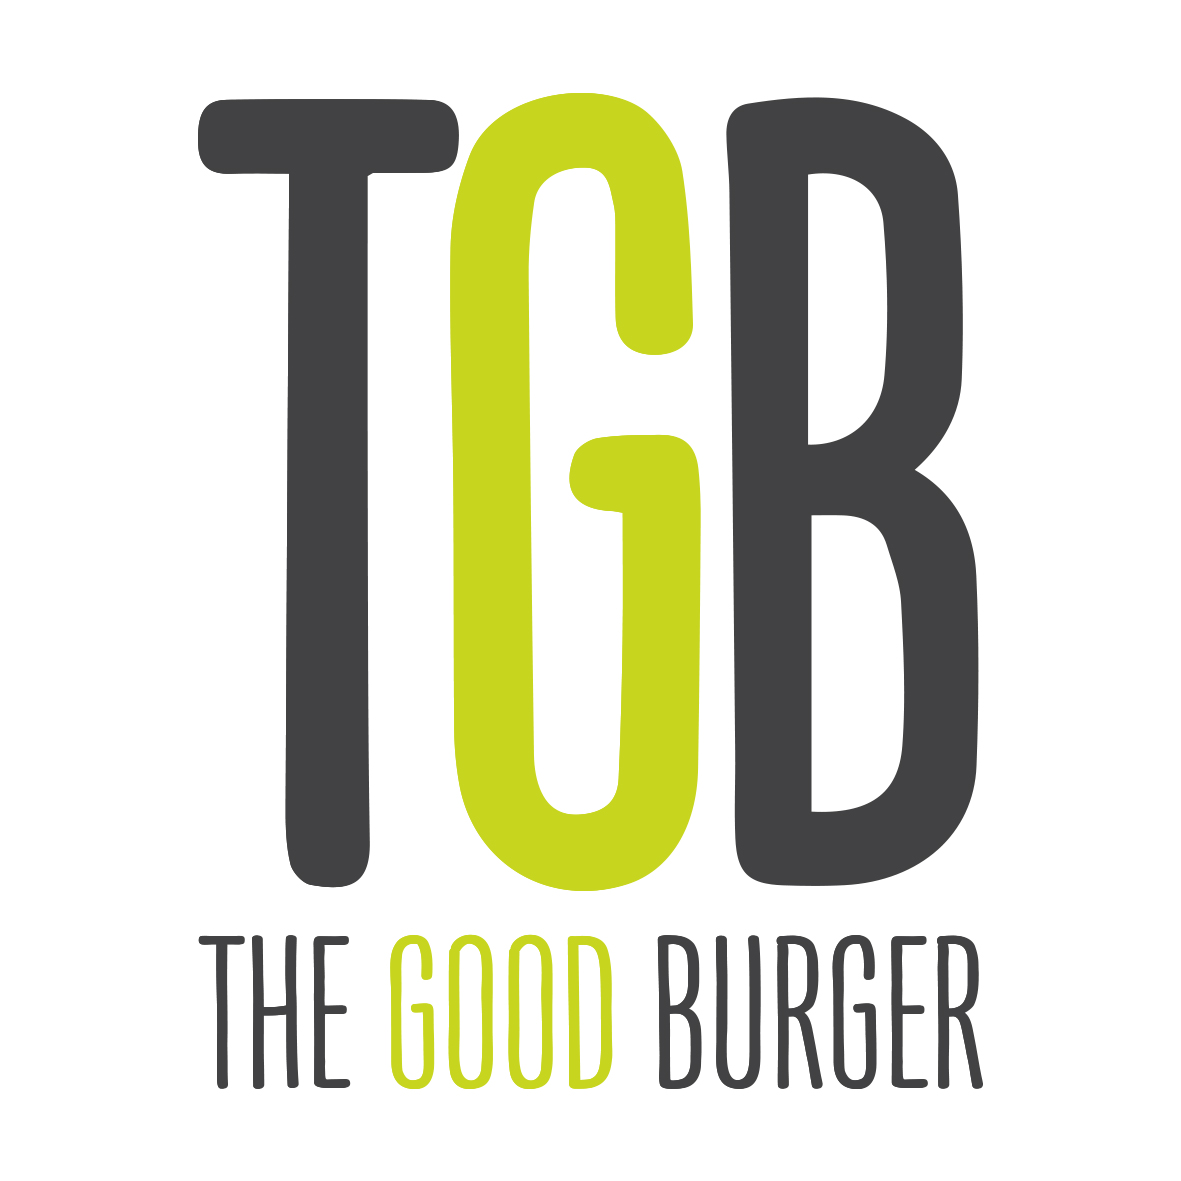 Diseño de restaurante The Good Burguer logotipo